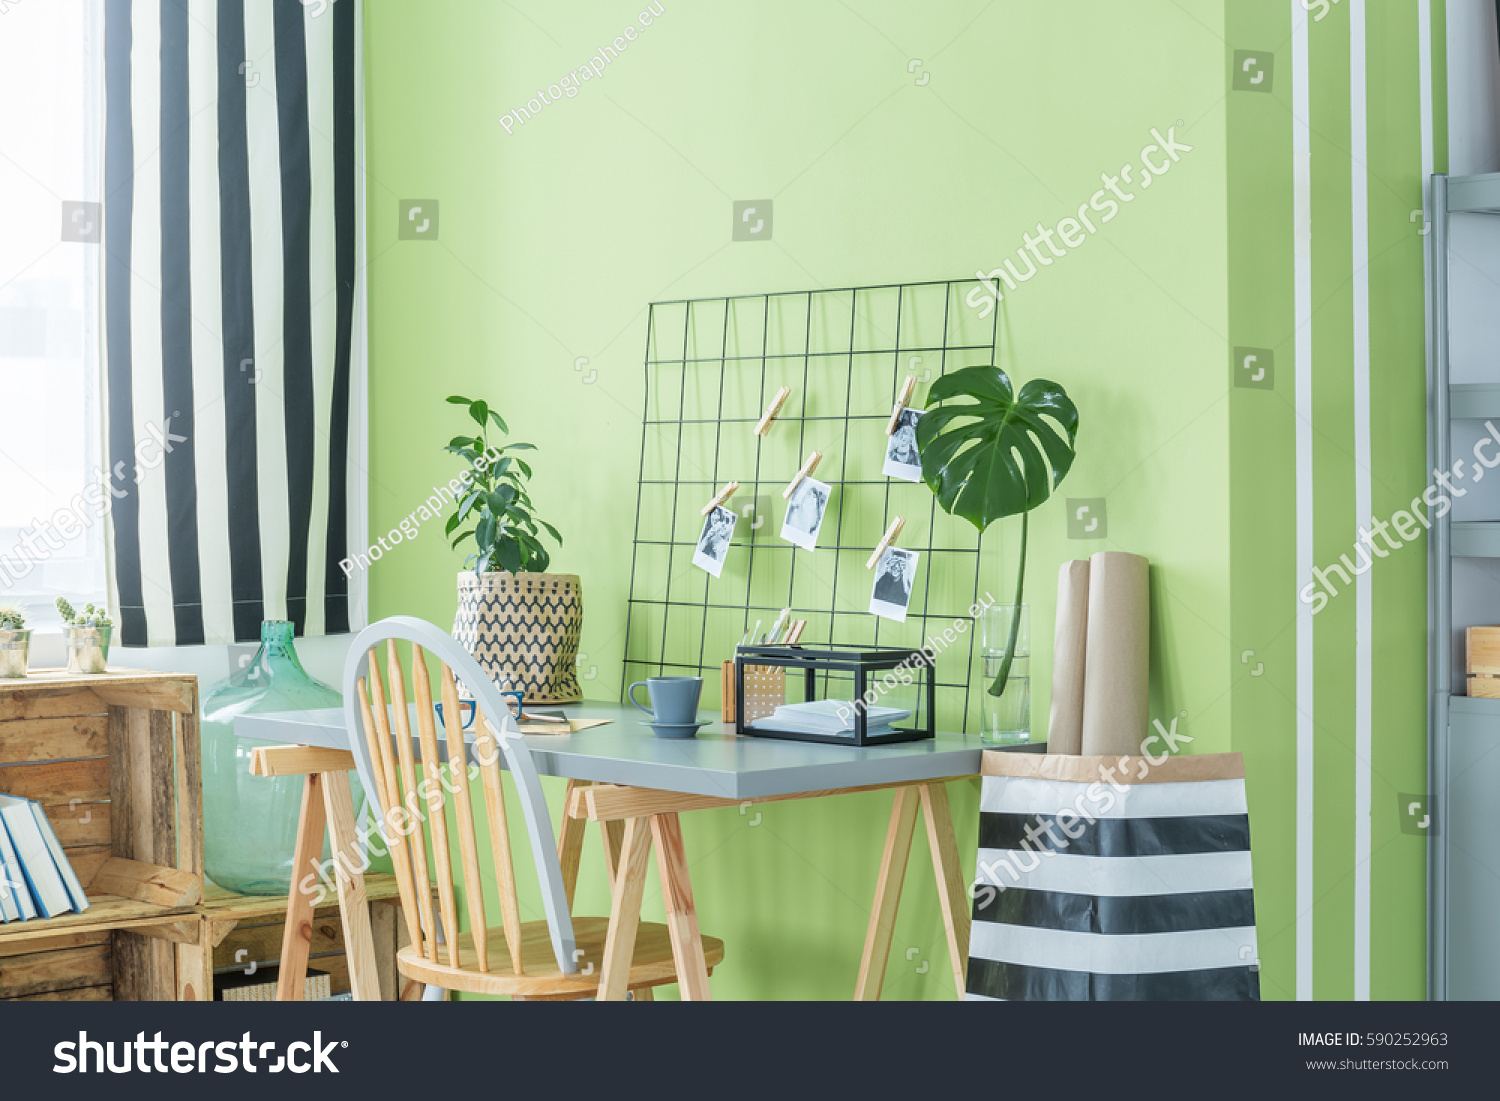 Home Office With Green Plants Desk Chair And Metal Accessories